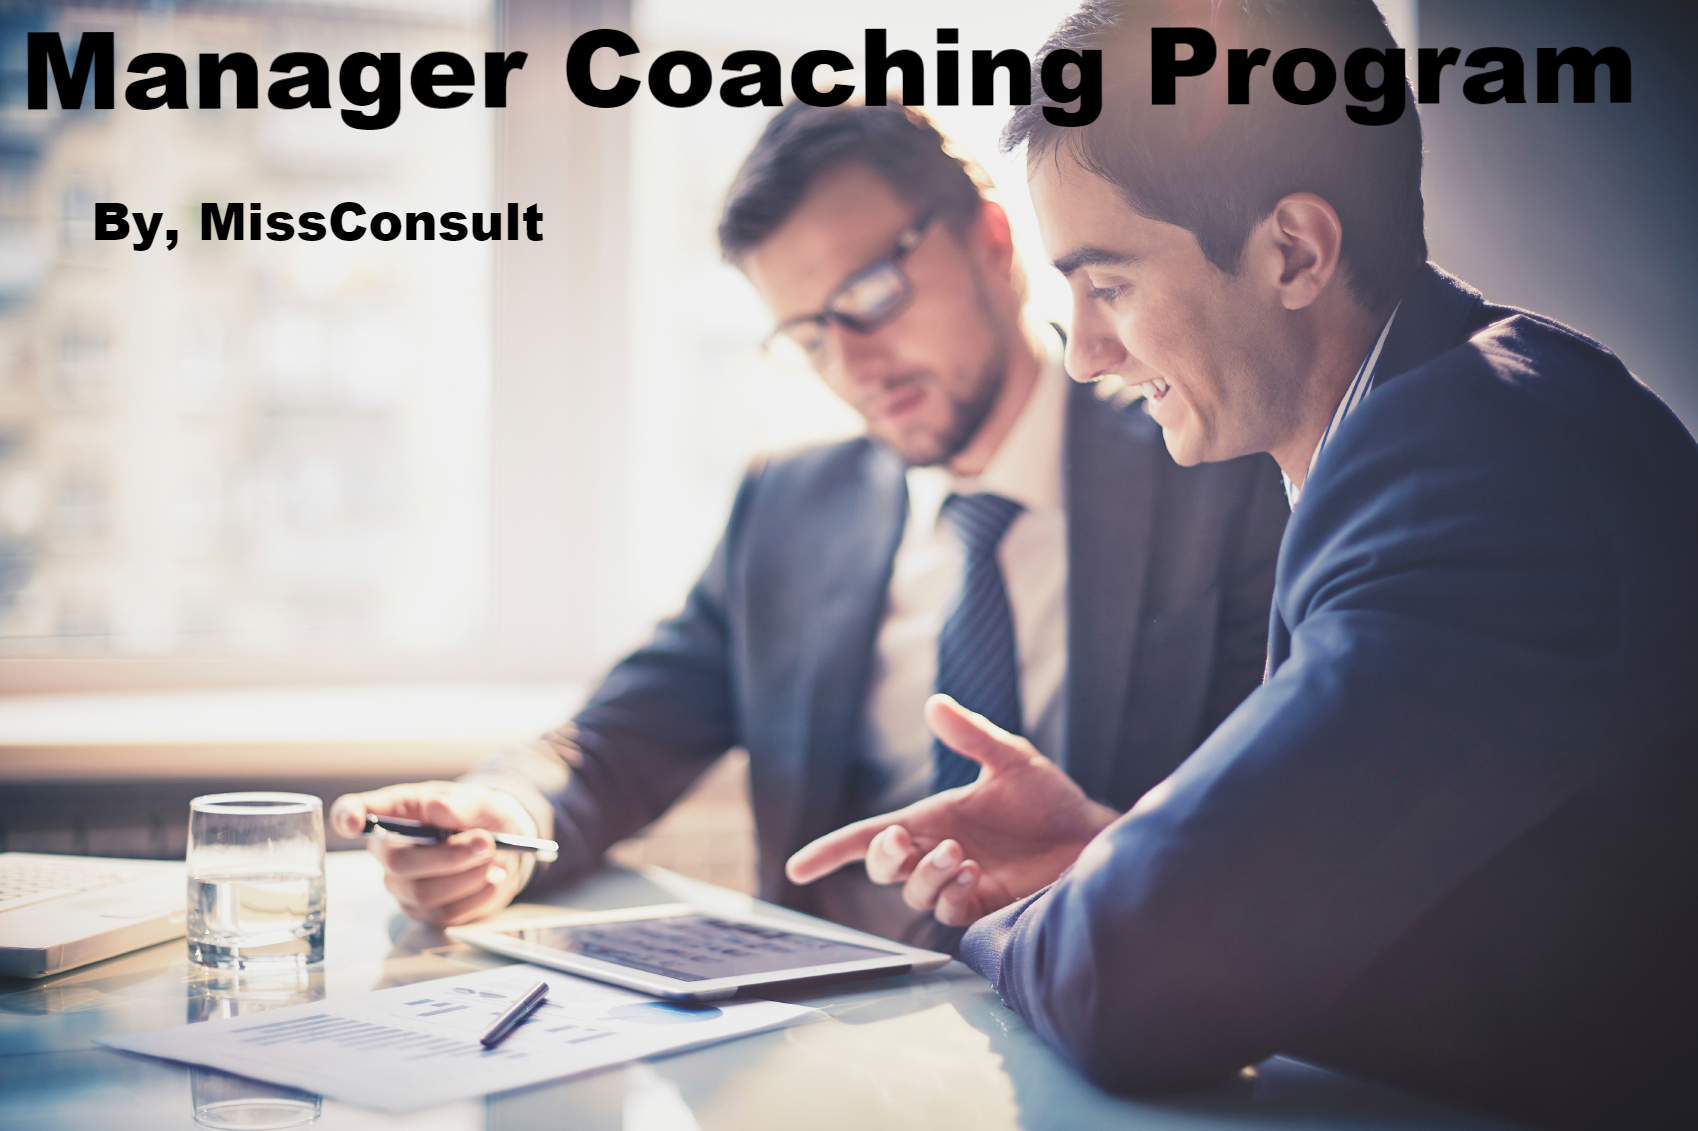 Manager Coaching Program